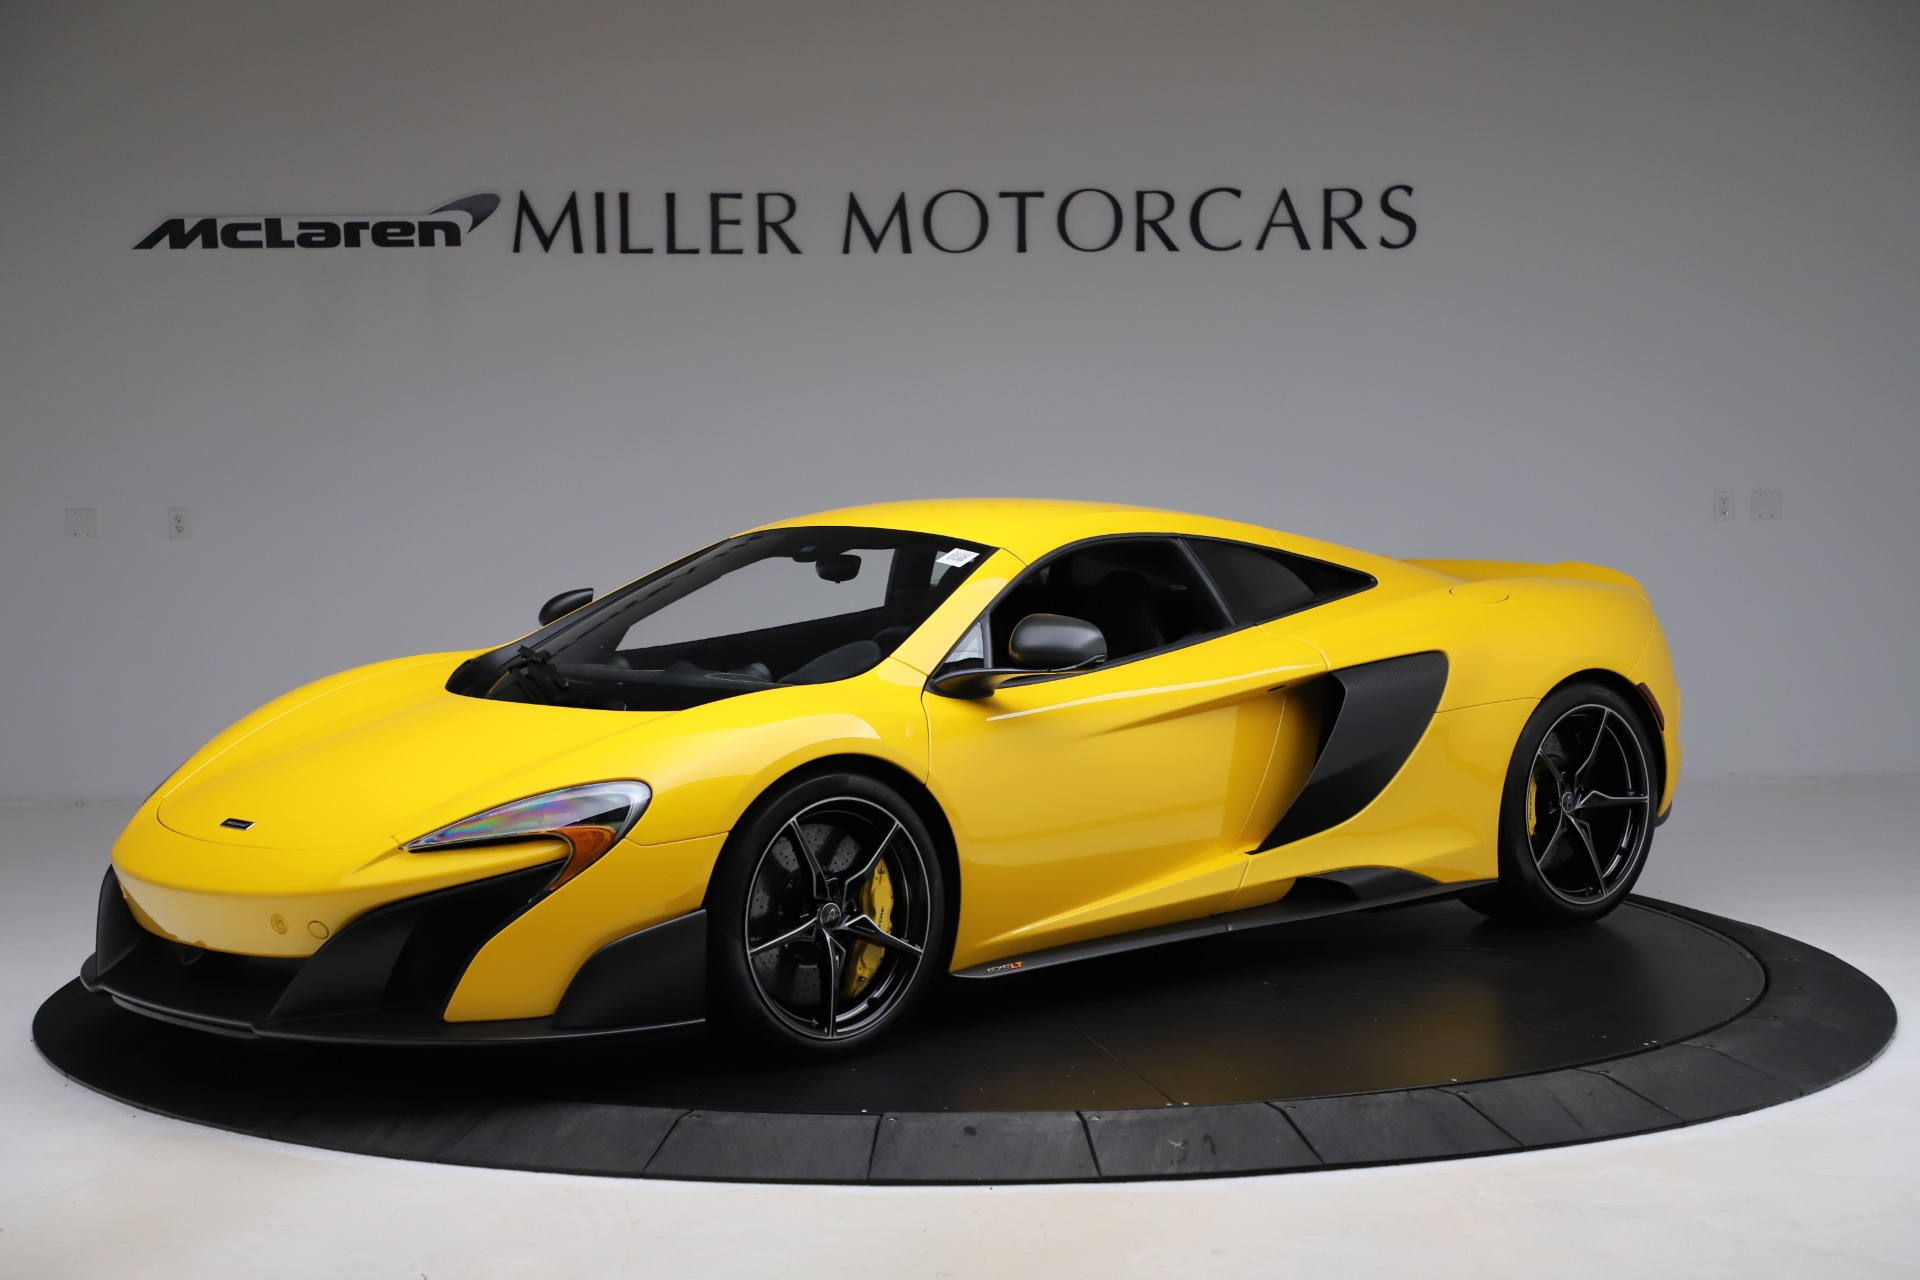 Used 2016 McLaren 675LT for sale $225,900 at Pagani of Greenwich in Greenwich CT 06830 1